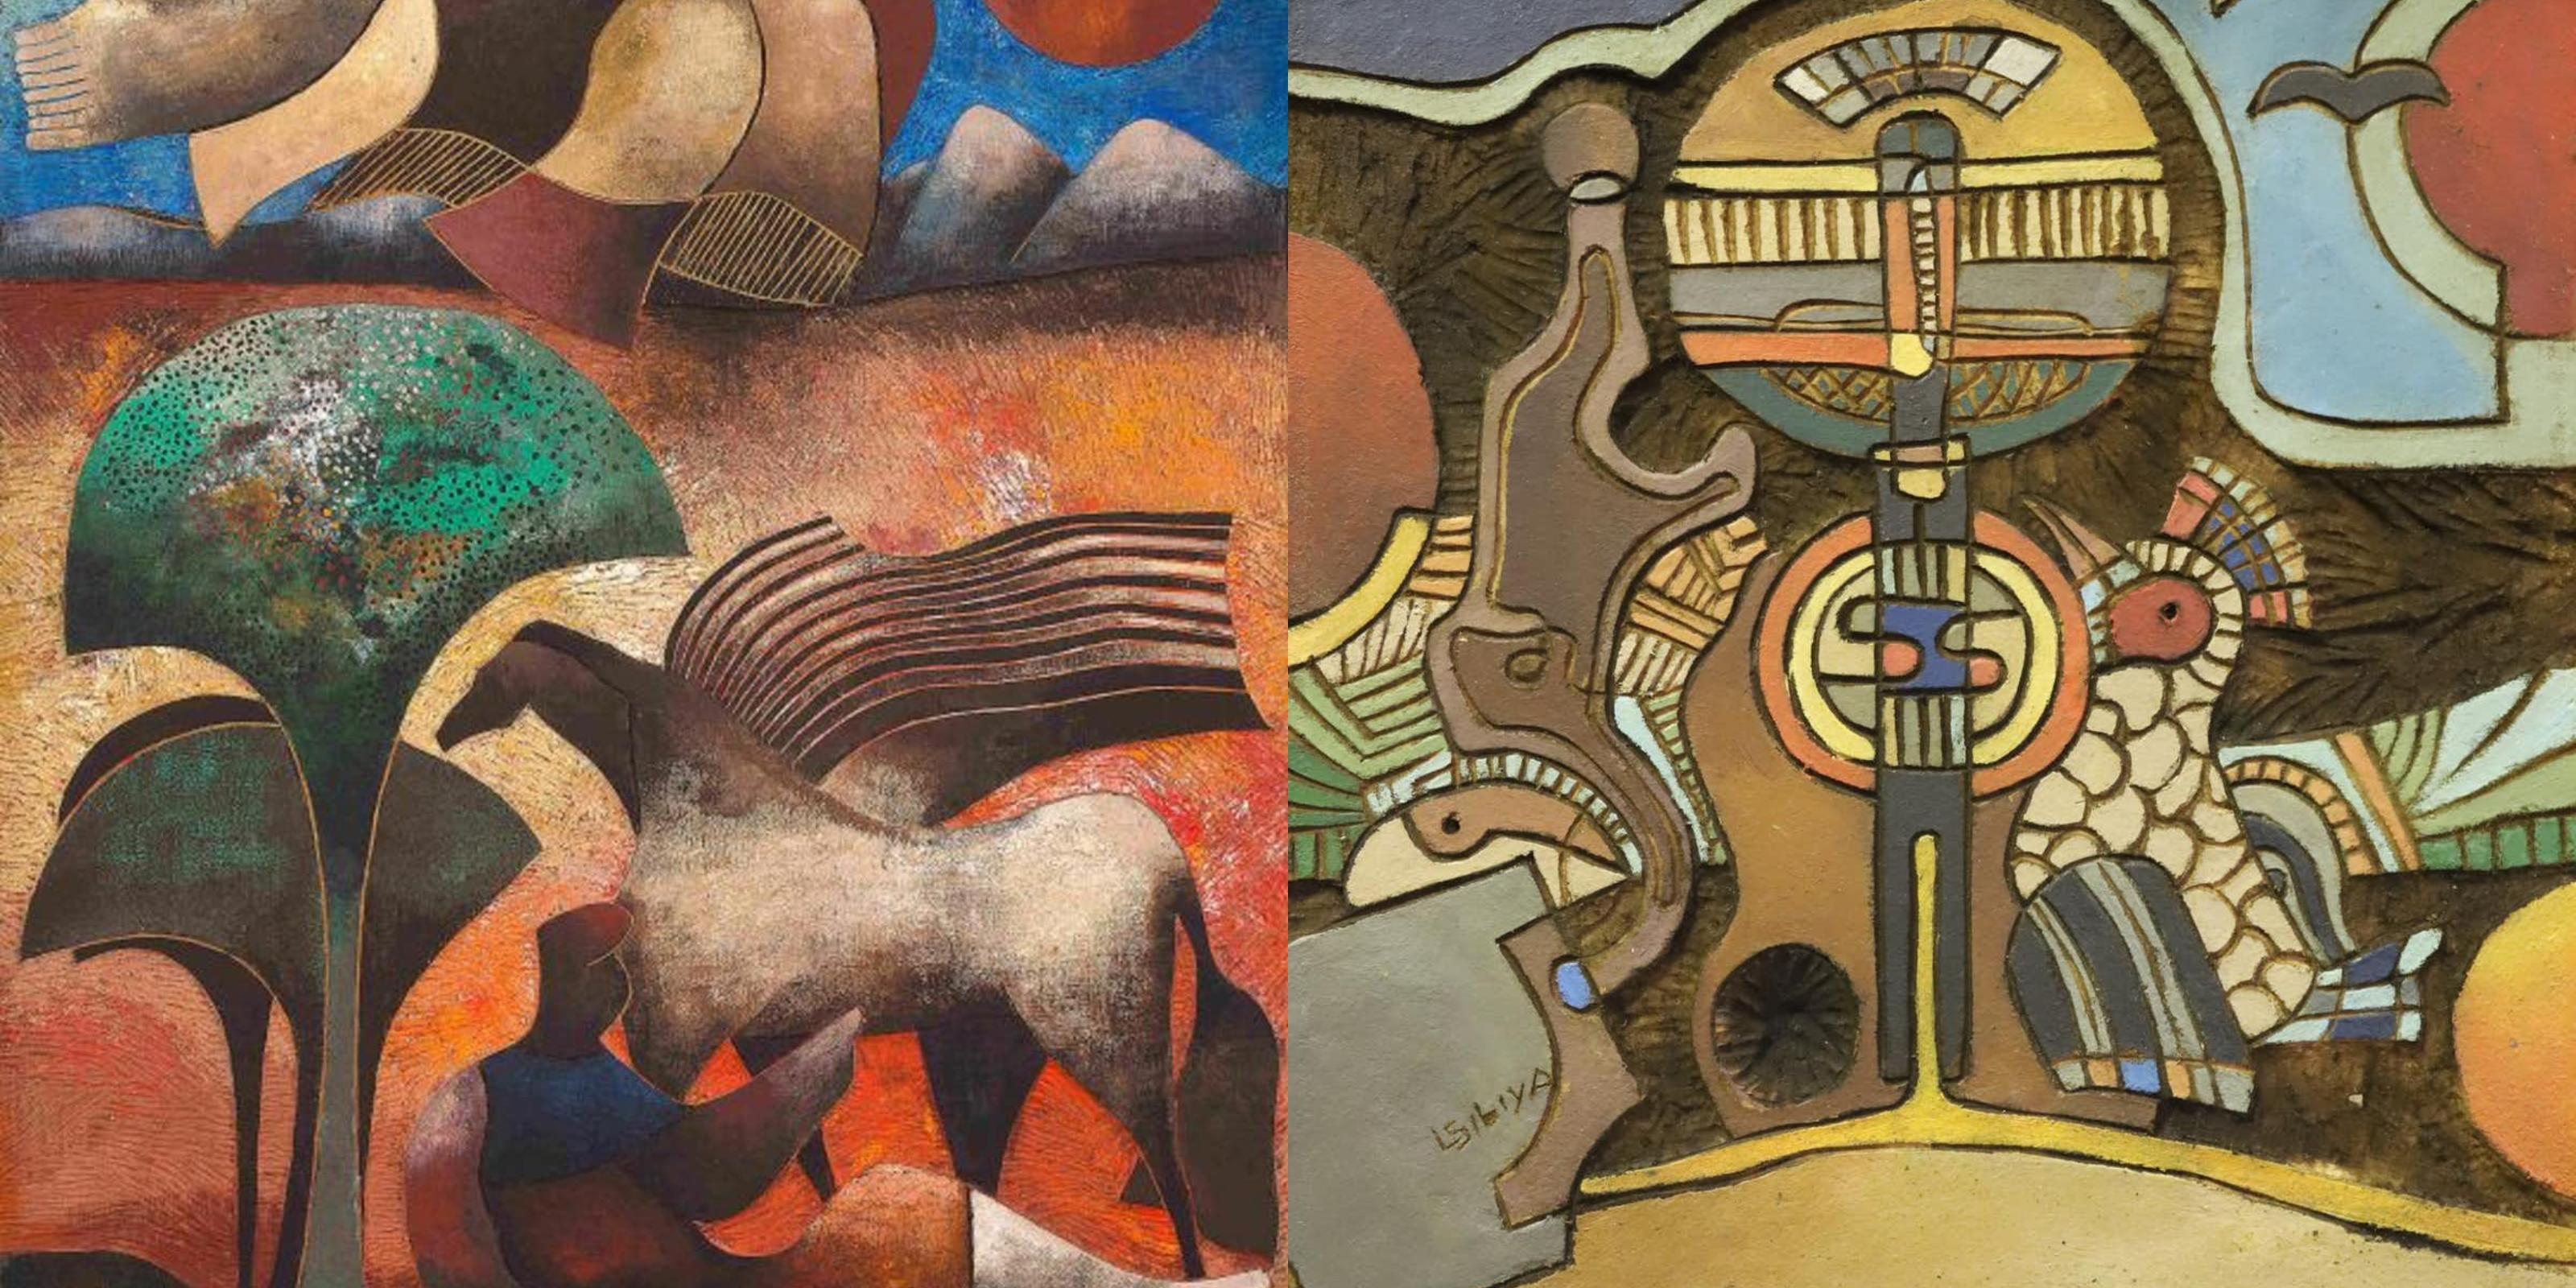 The popularity of African art has led to a market for forgeries